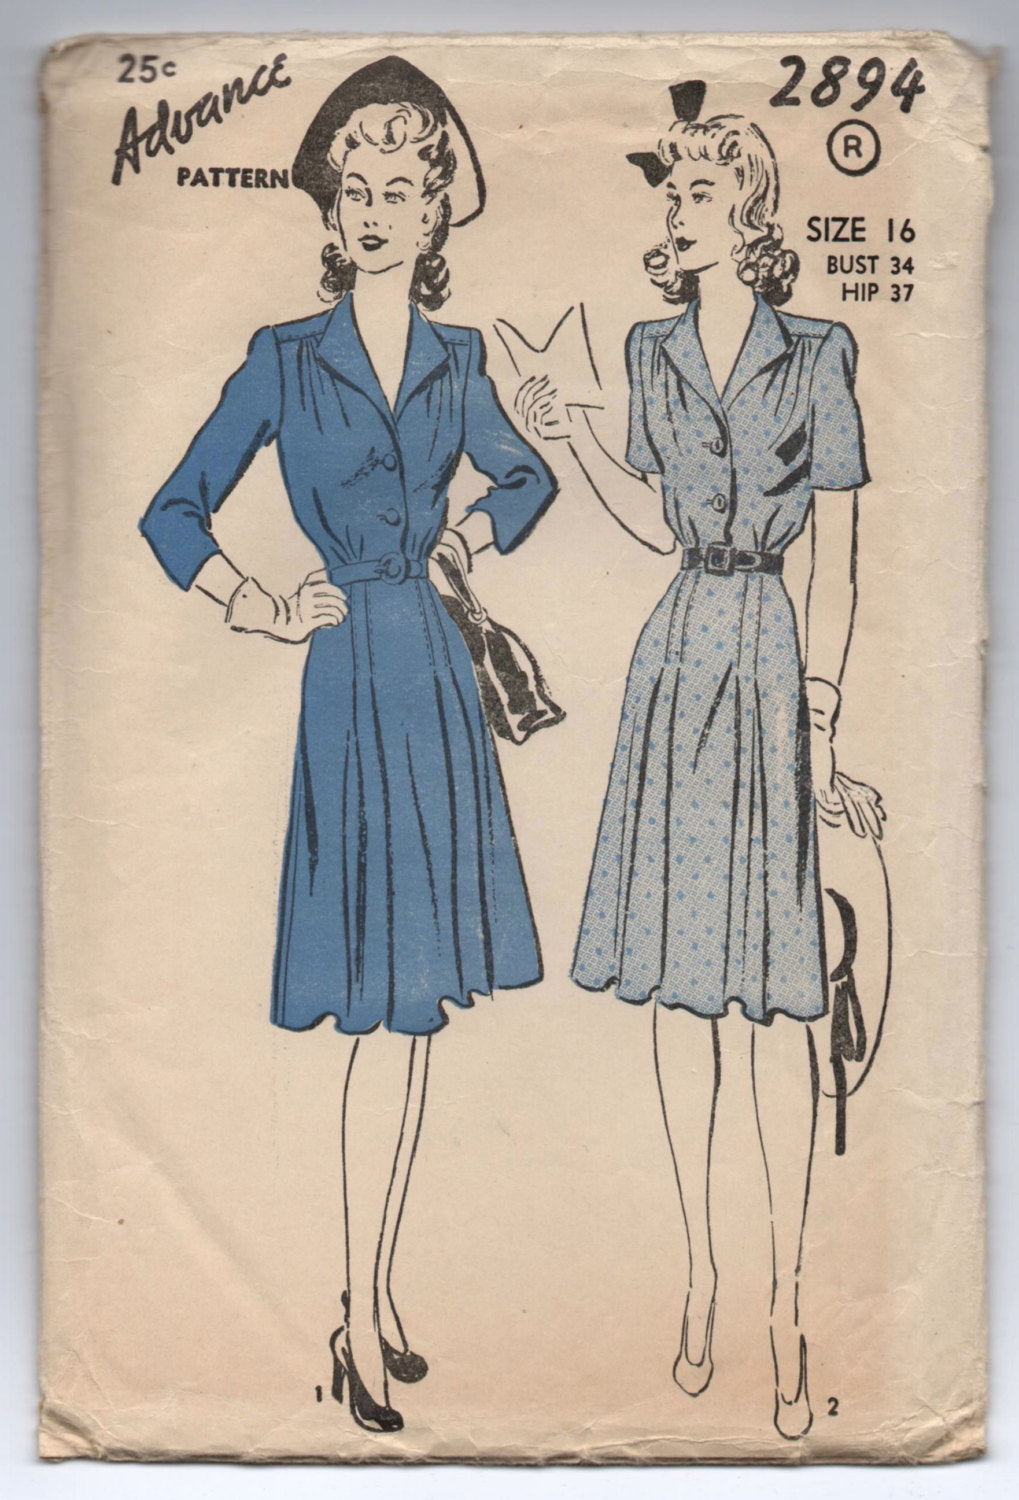 1940's Advance One-Piece Shirtwaist Dress with 3/4 or Short Sleeves - Bust 34